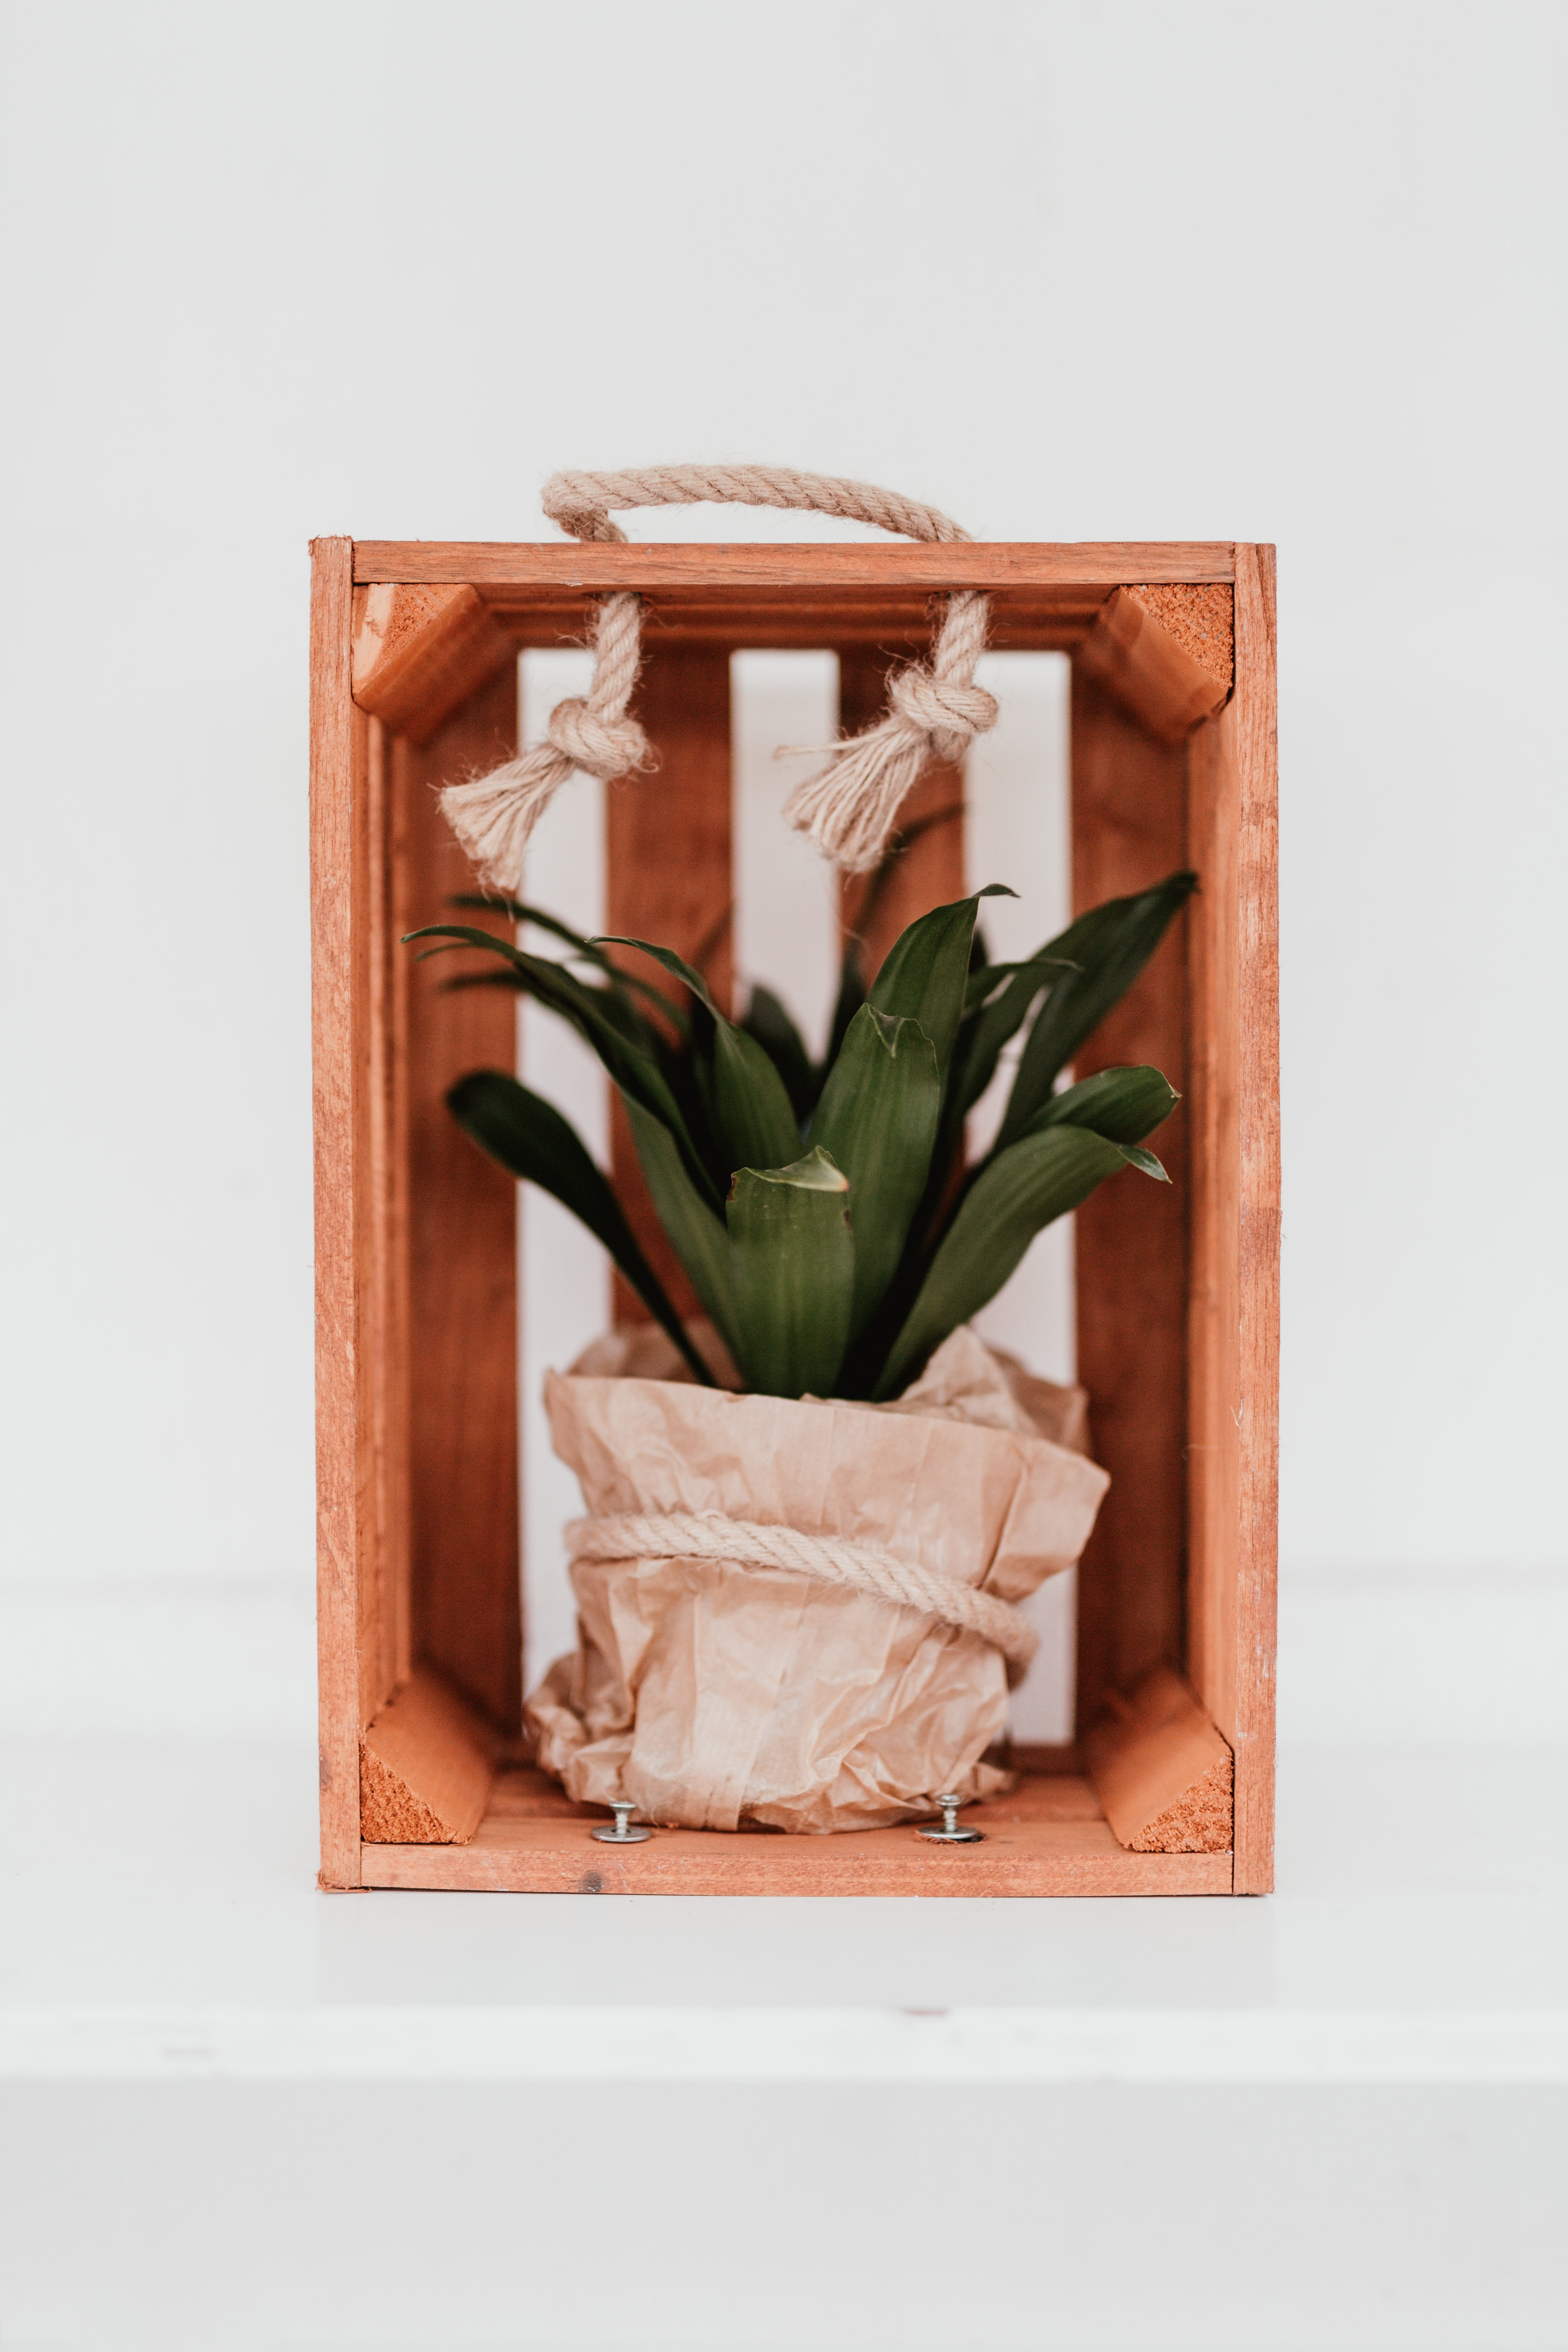 green plant in brown wooden crate